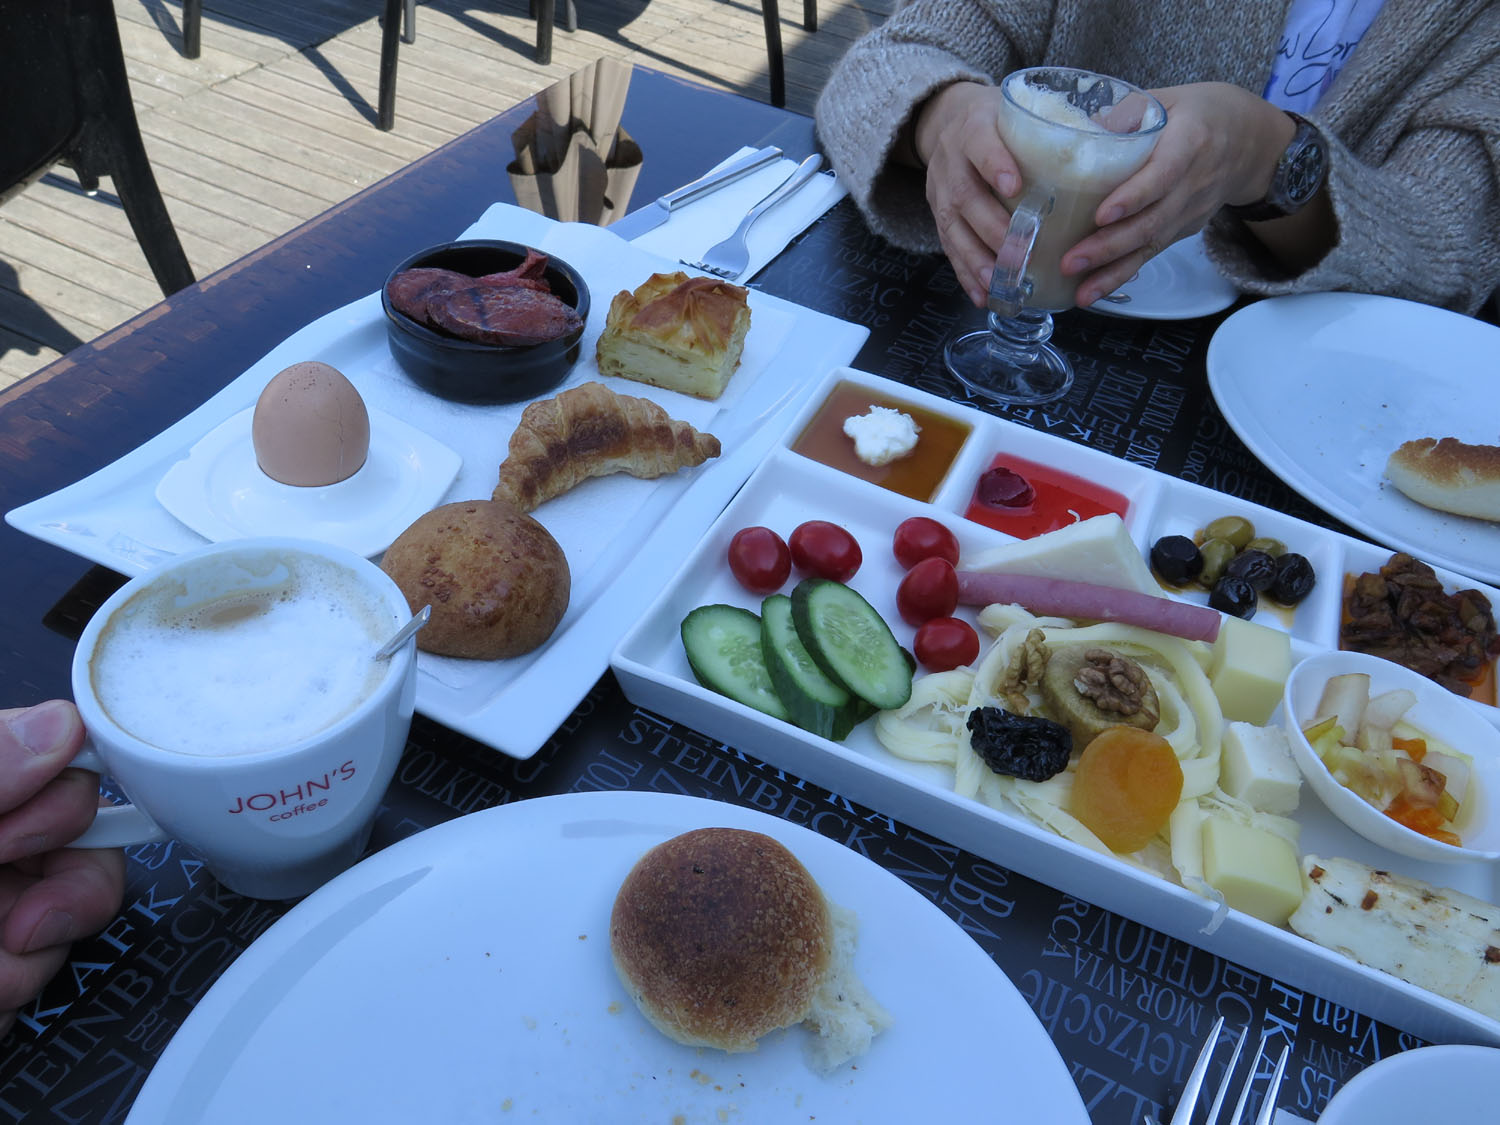 Turkey-Istanbul-Food-And-Drink-Breakfast